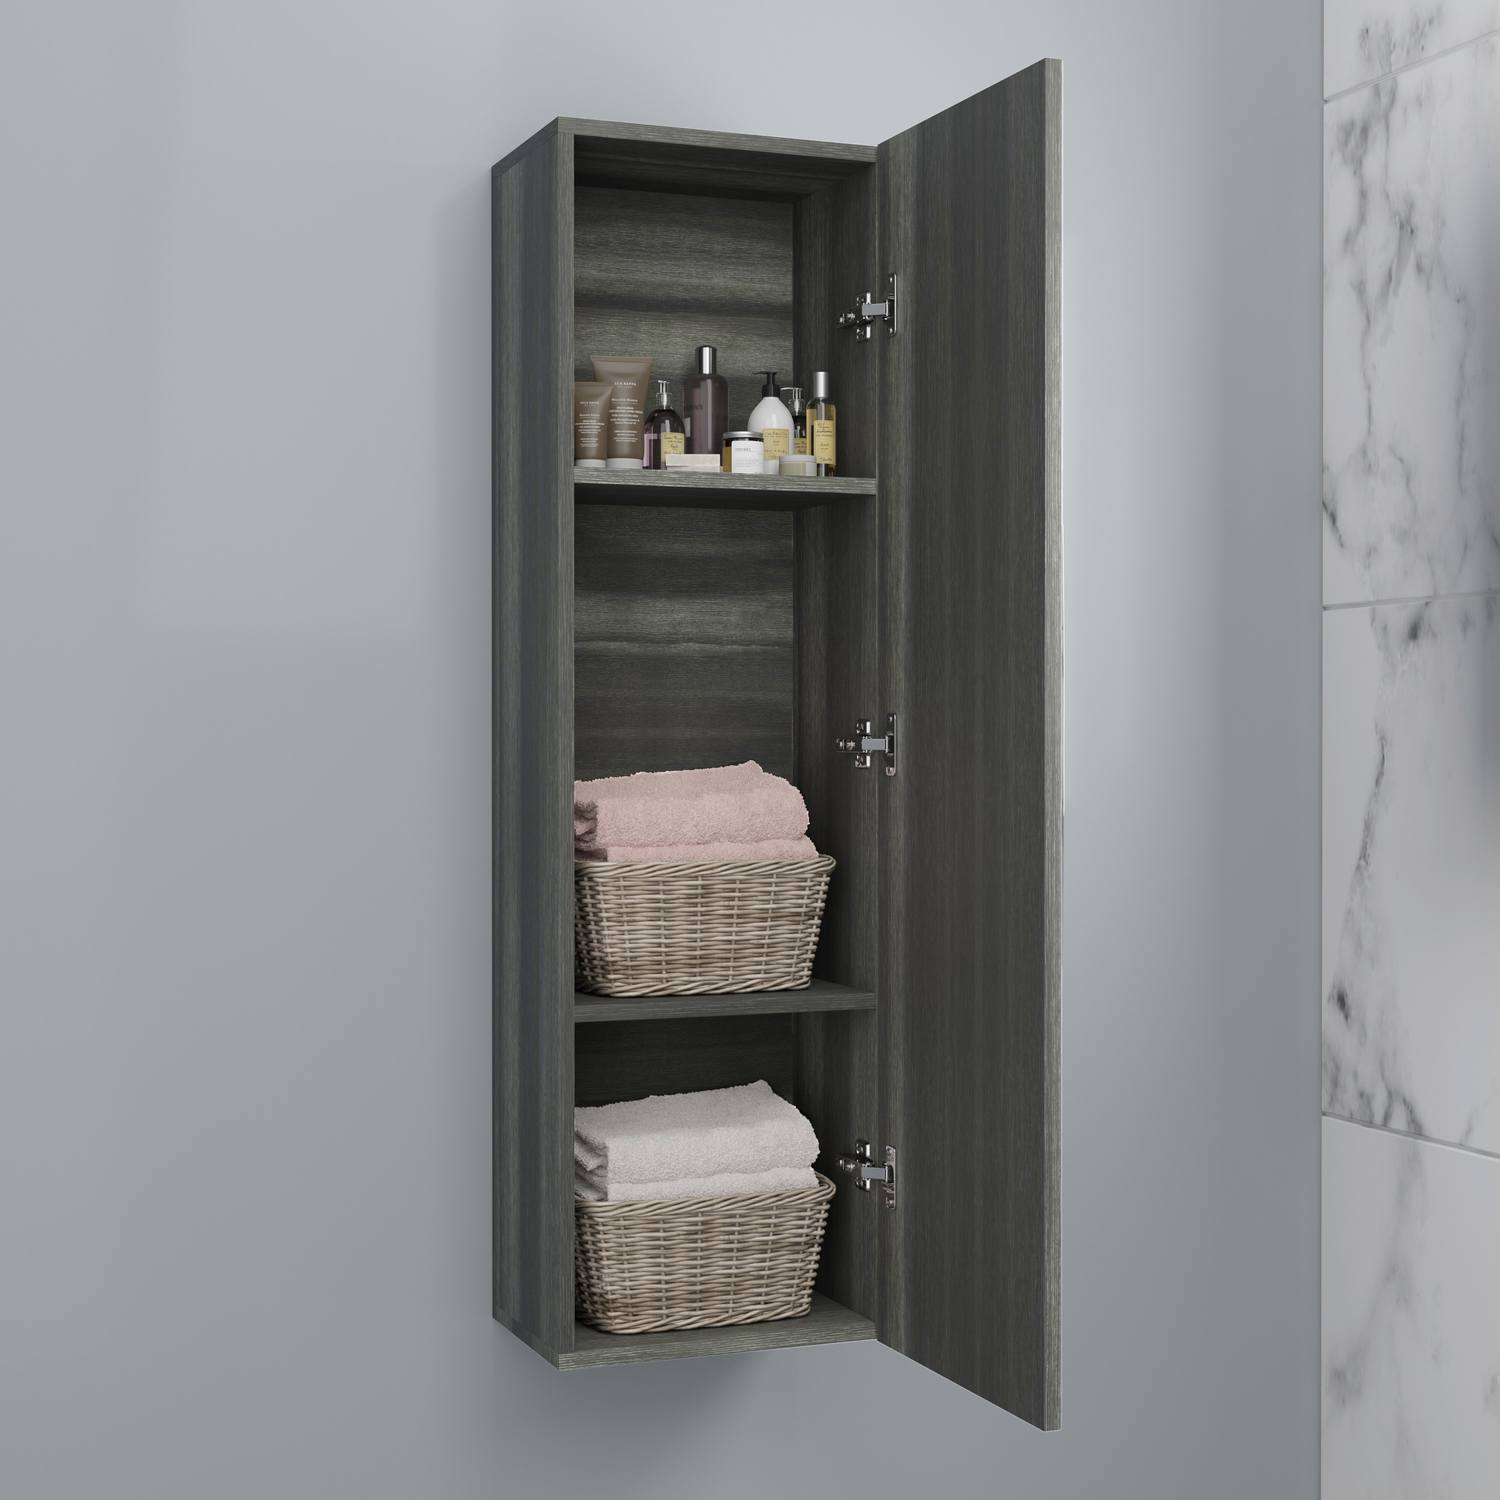 Details About 1200mm Tall Bathroom Wall Hung Storage Cabinet Cupboard Modern Soft Close Grey in dimensions 1500 X 1500